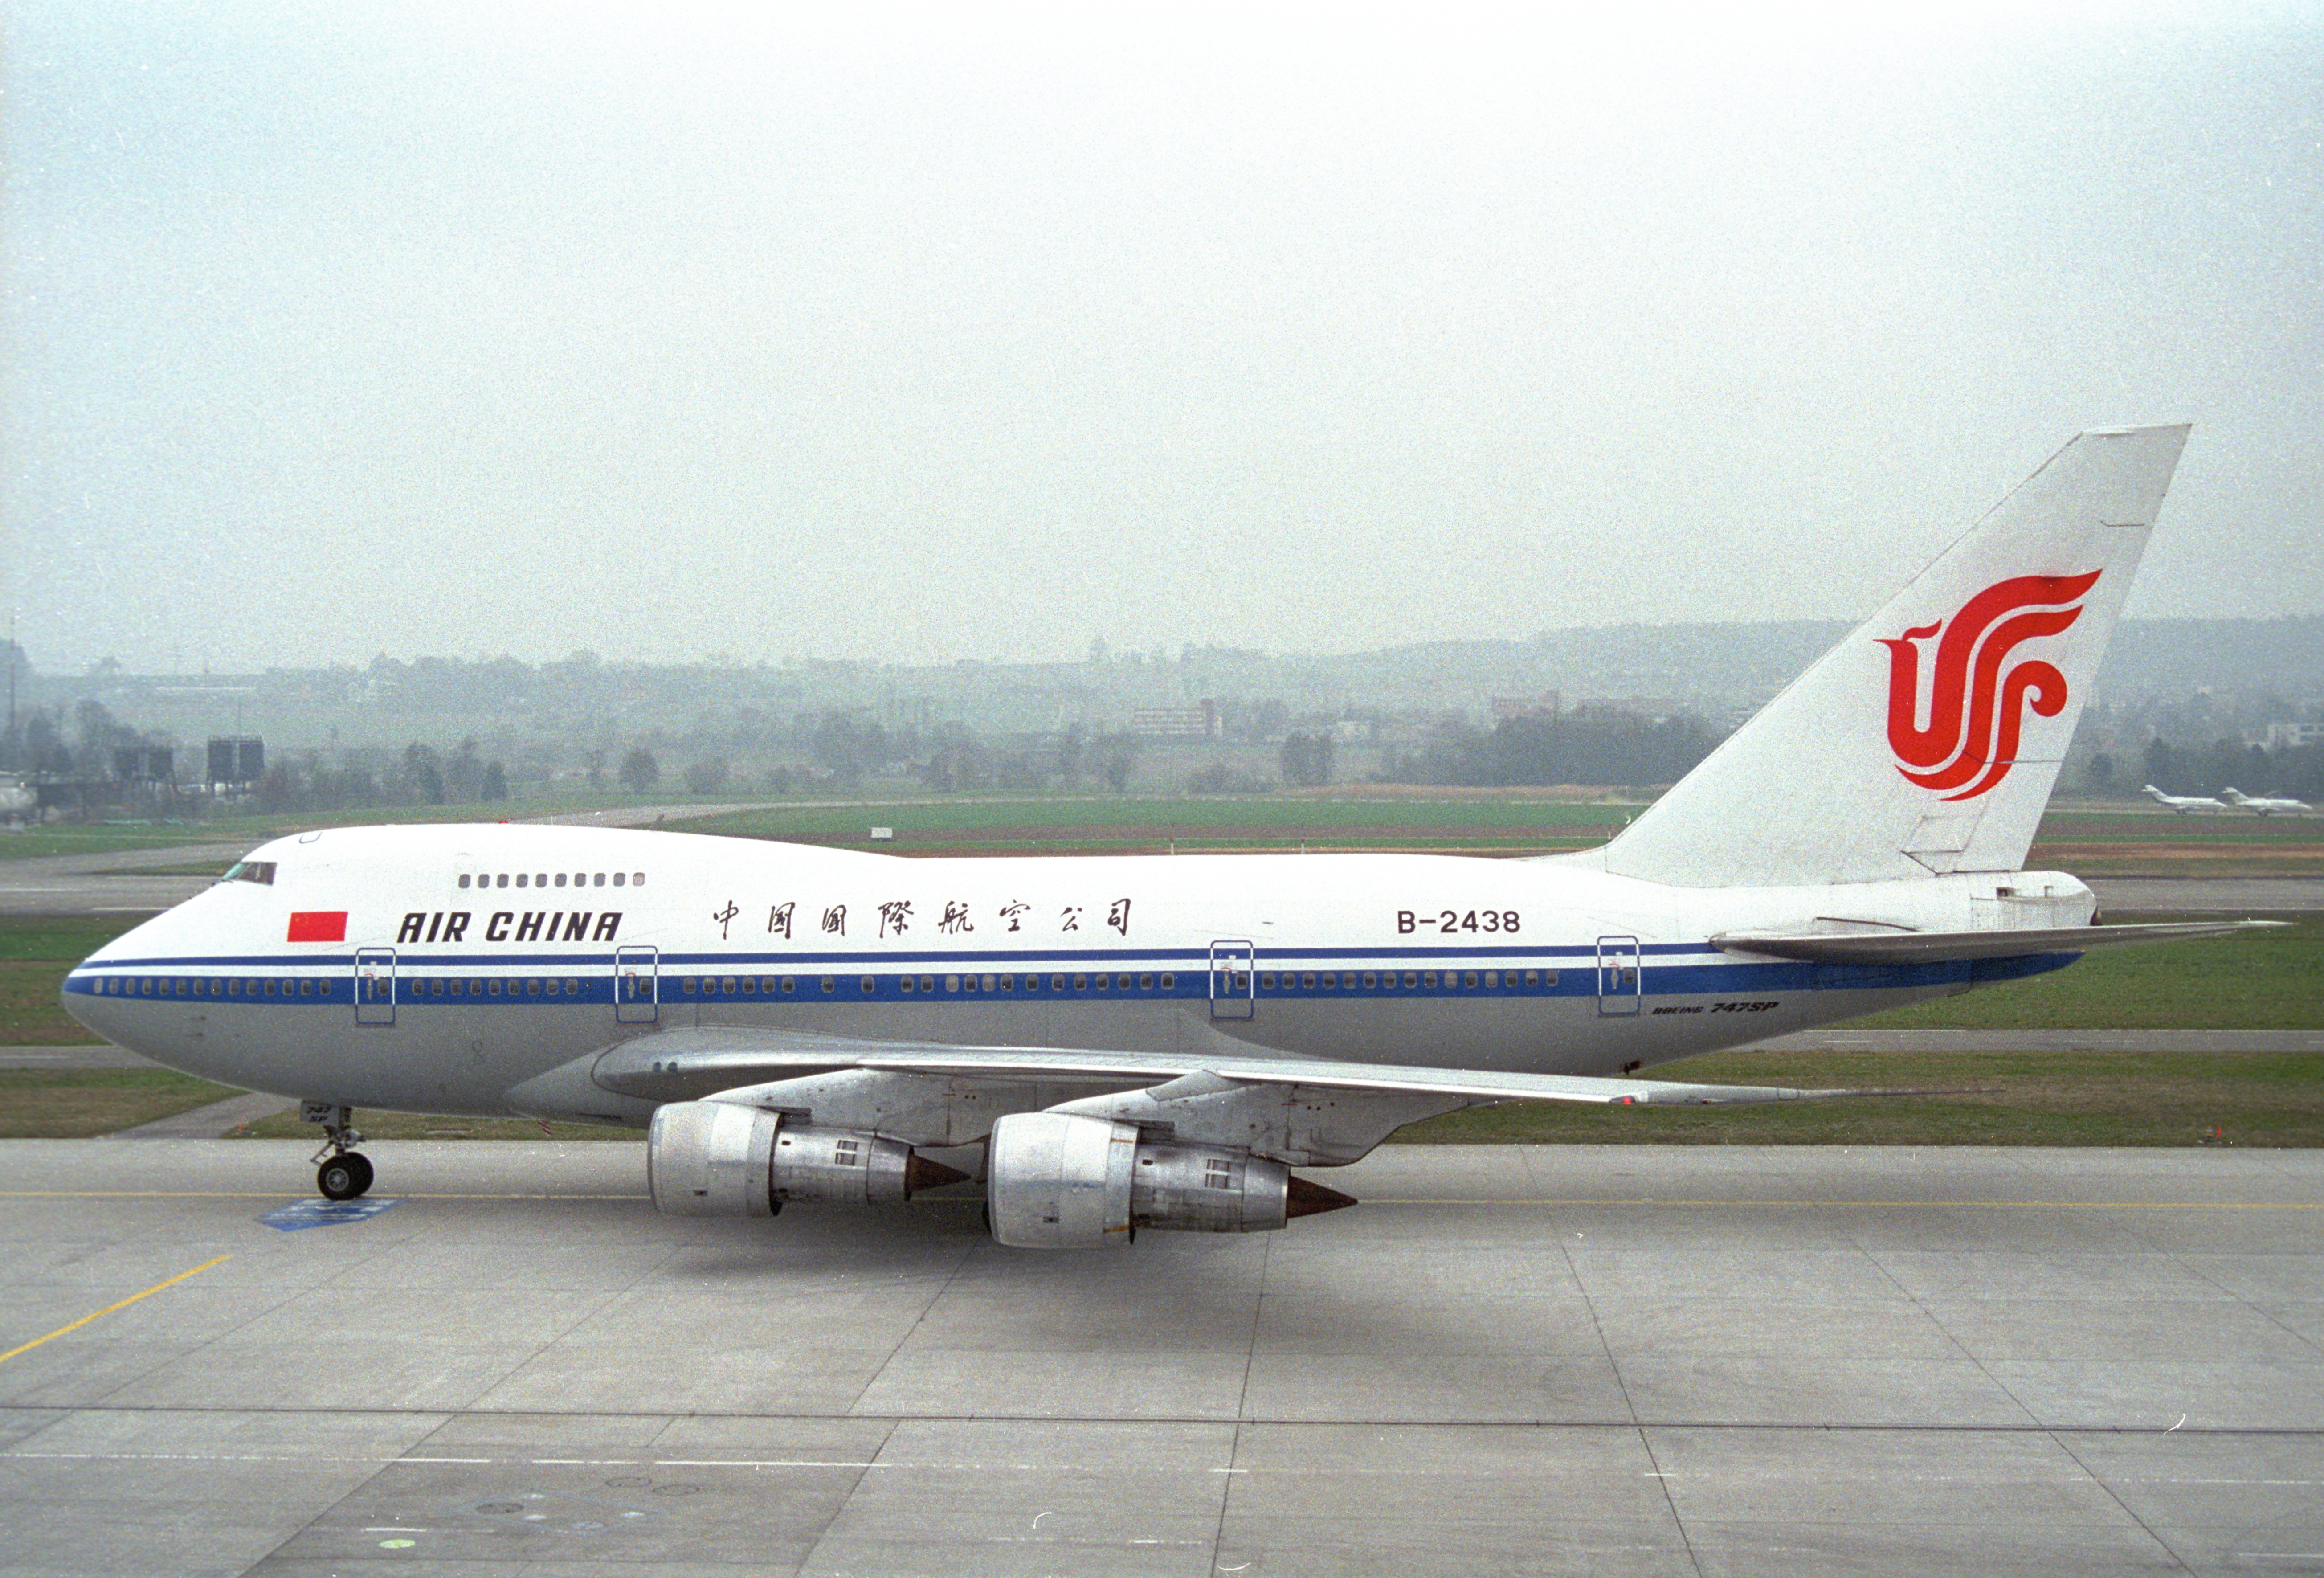 File:Air China Boeing 747SP-J6; [email protected];09.03